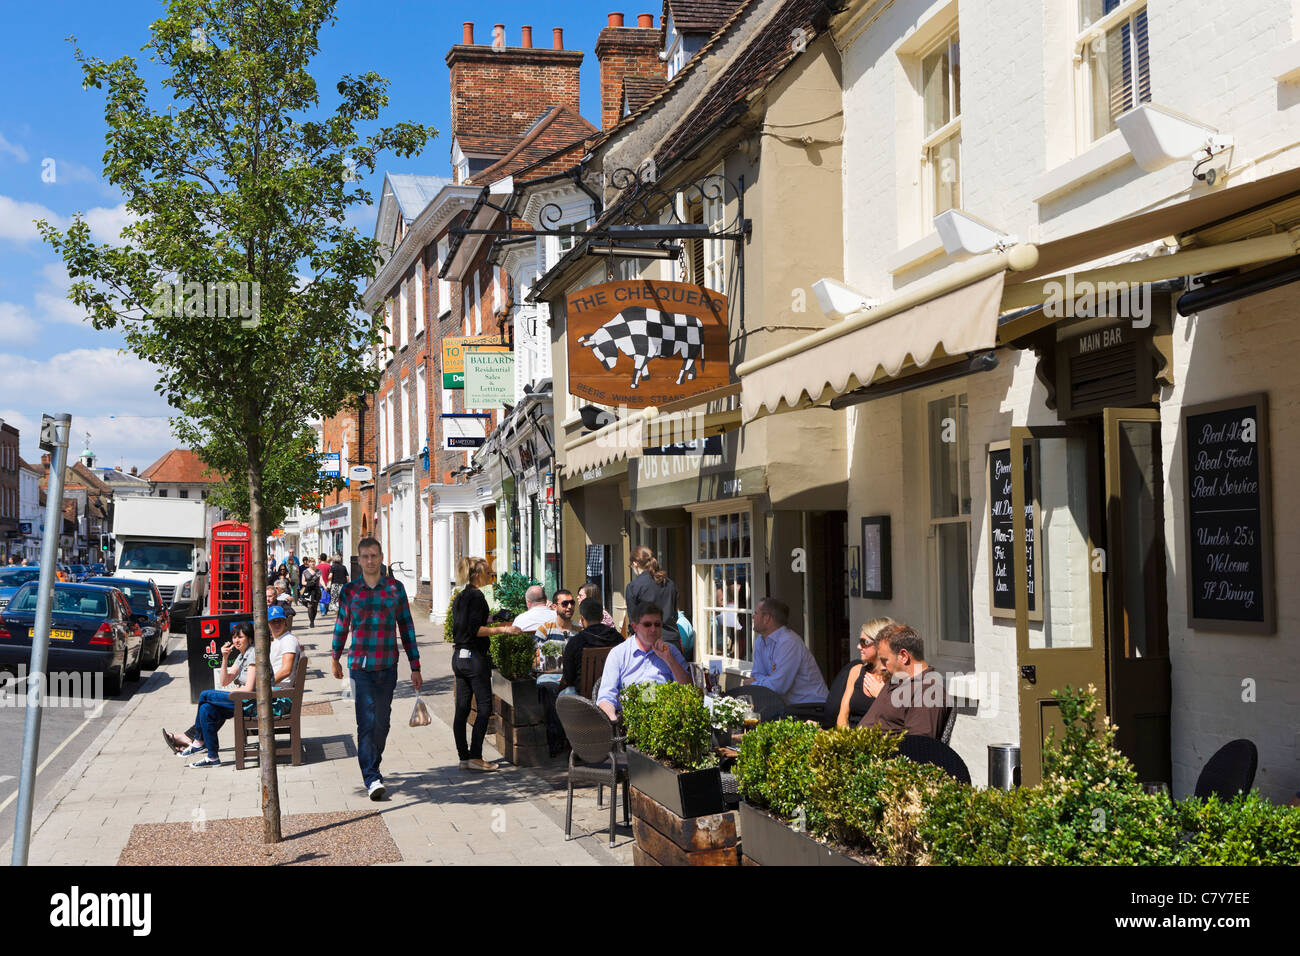 The Chequers pub on the High Street, Marlow, Buckinghamshire, England, UK Stock Photo